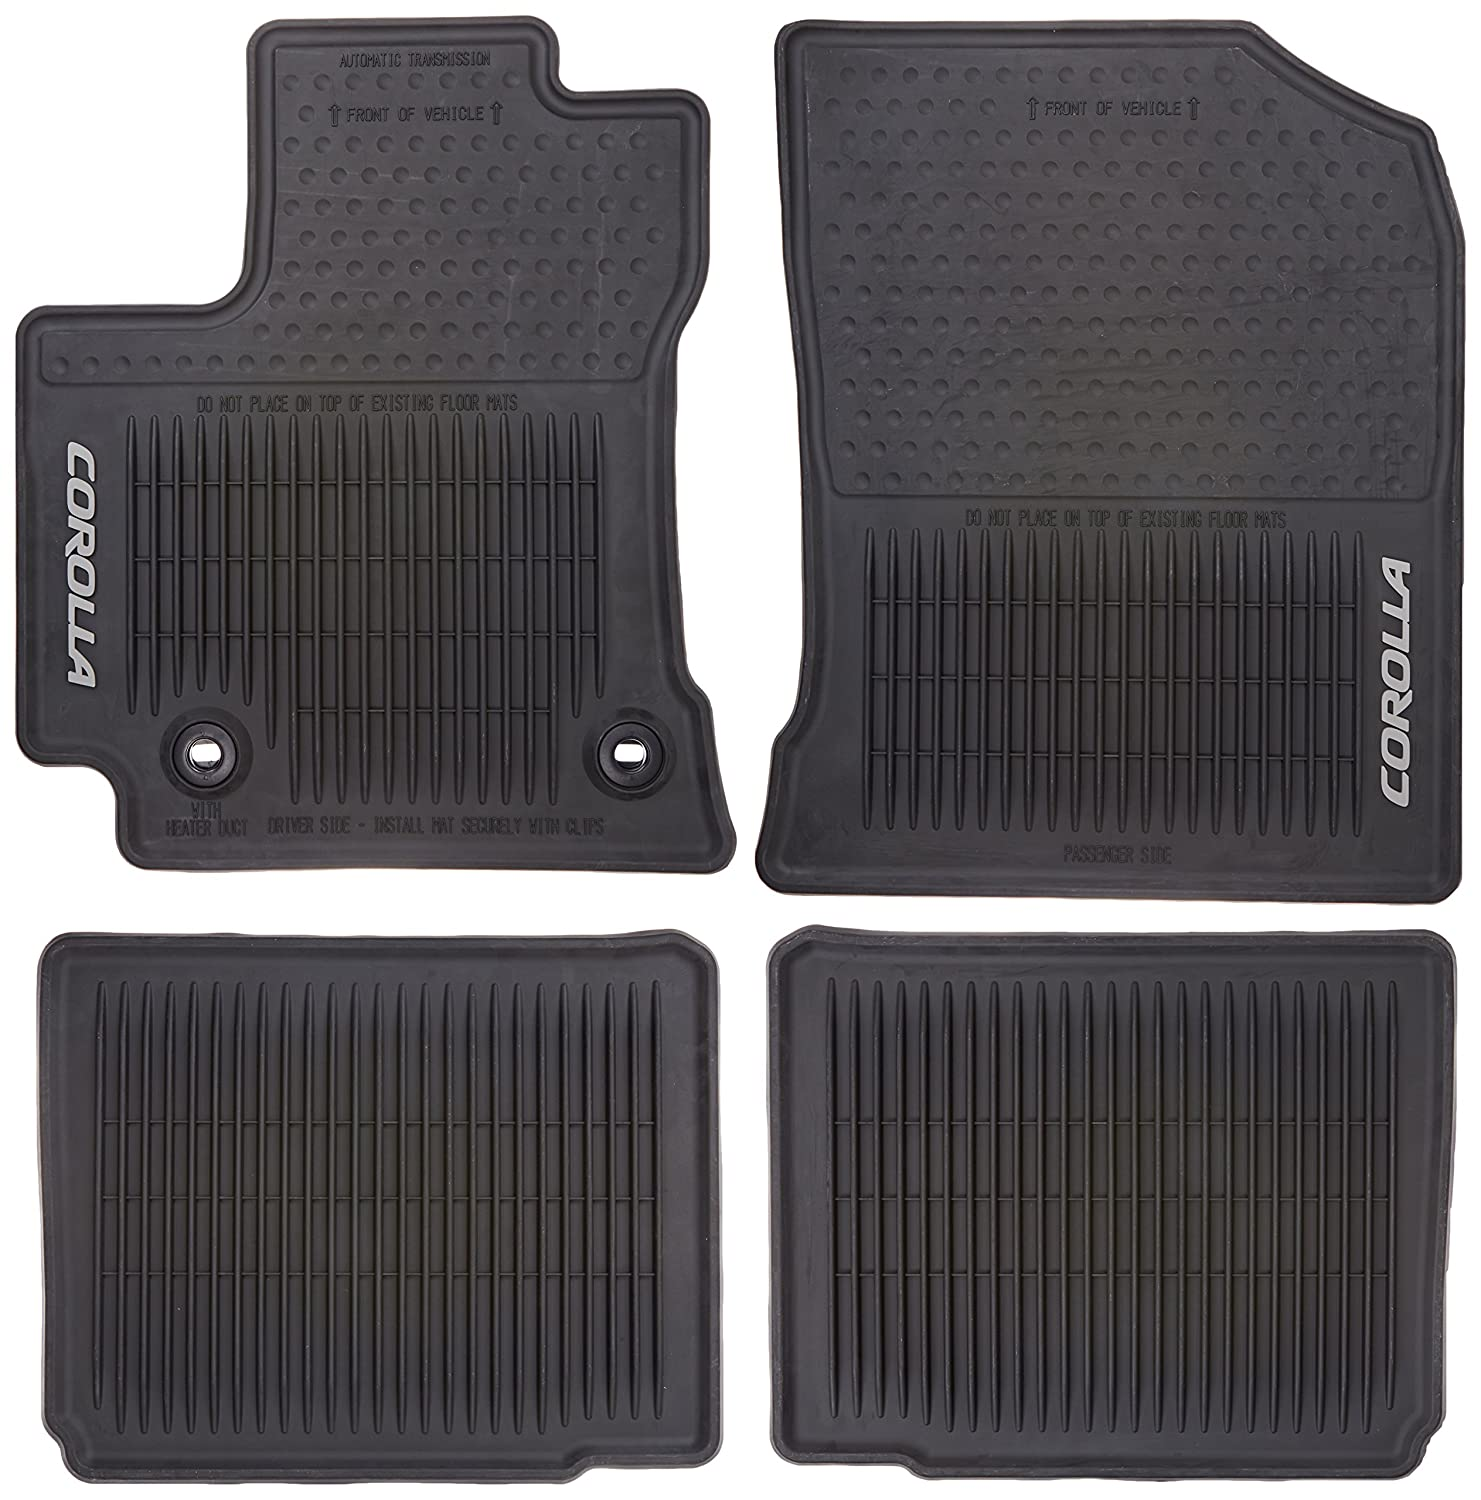 91UY4P3qHgL._SL1500_ Cool Review About 2006 toyota Corolla Floor Mats with Mesmerizing Pictures Cars Review